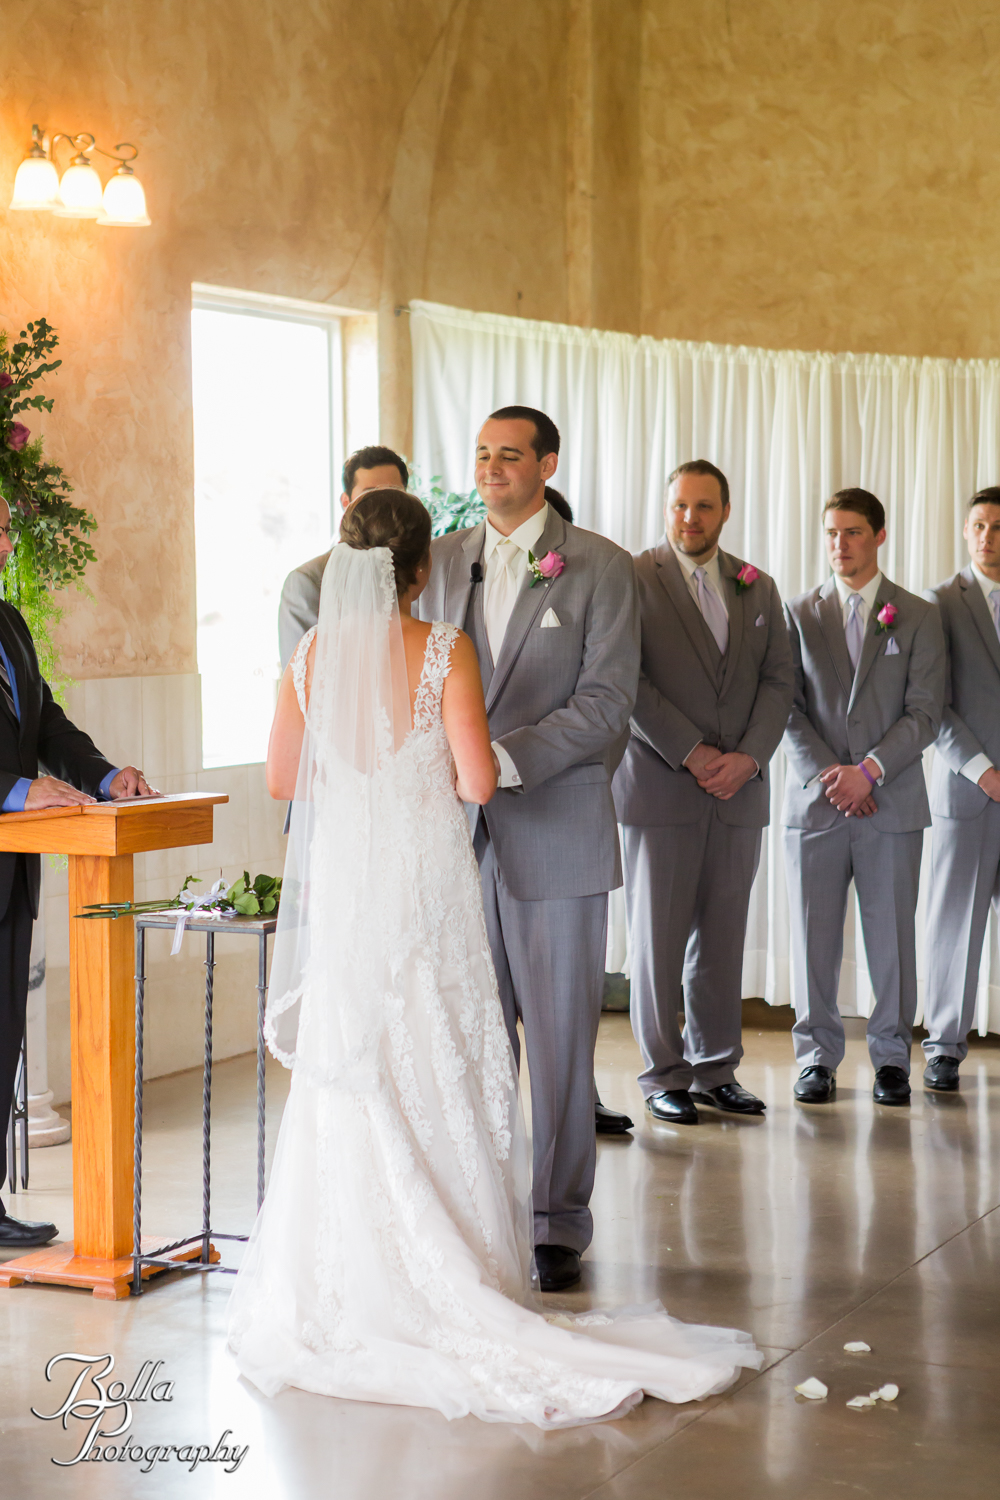 Bolla_Photography_St_Louis_wedding_photographer_Villa_Marie_Winery-0197.jpg